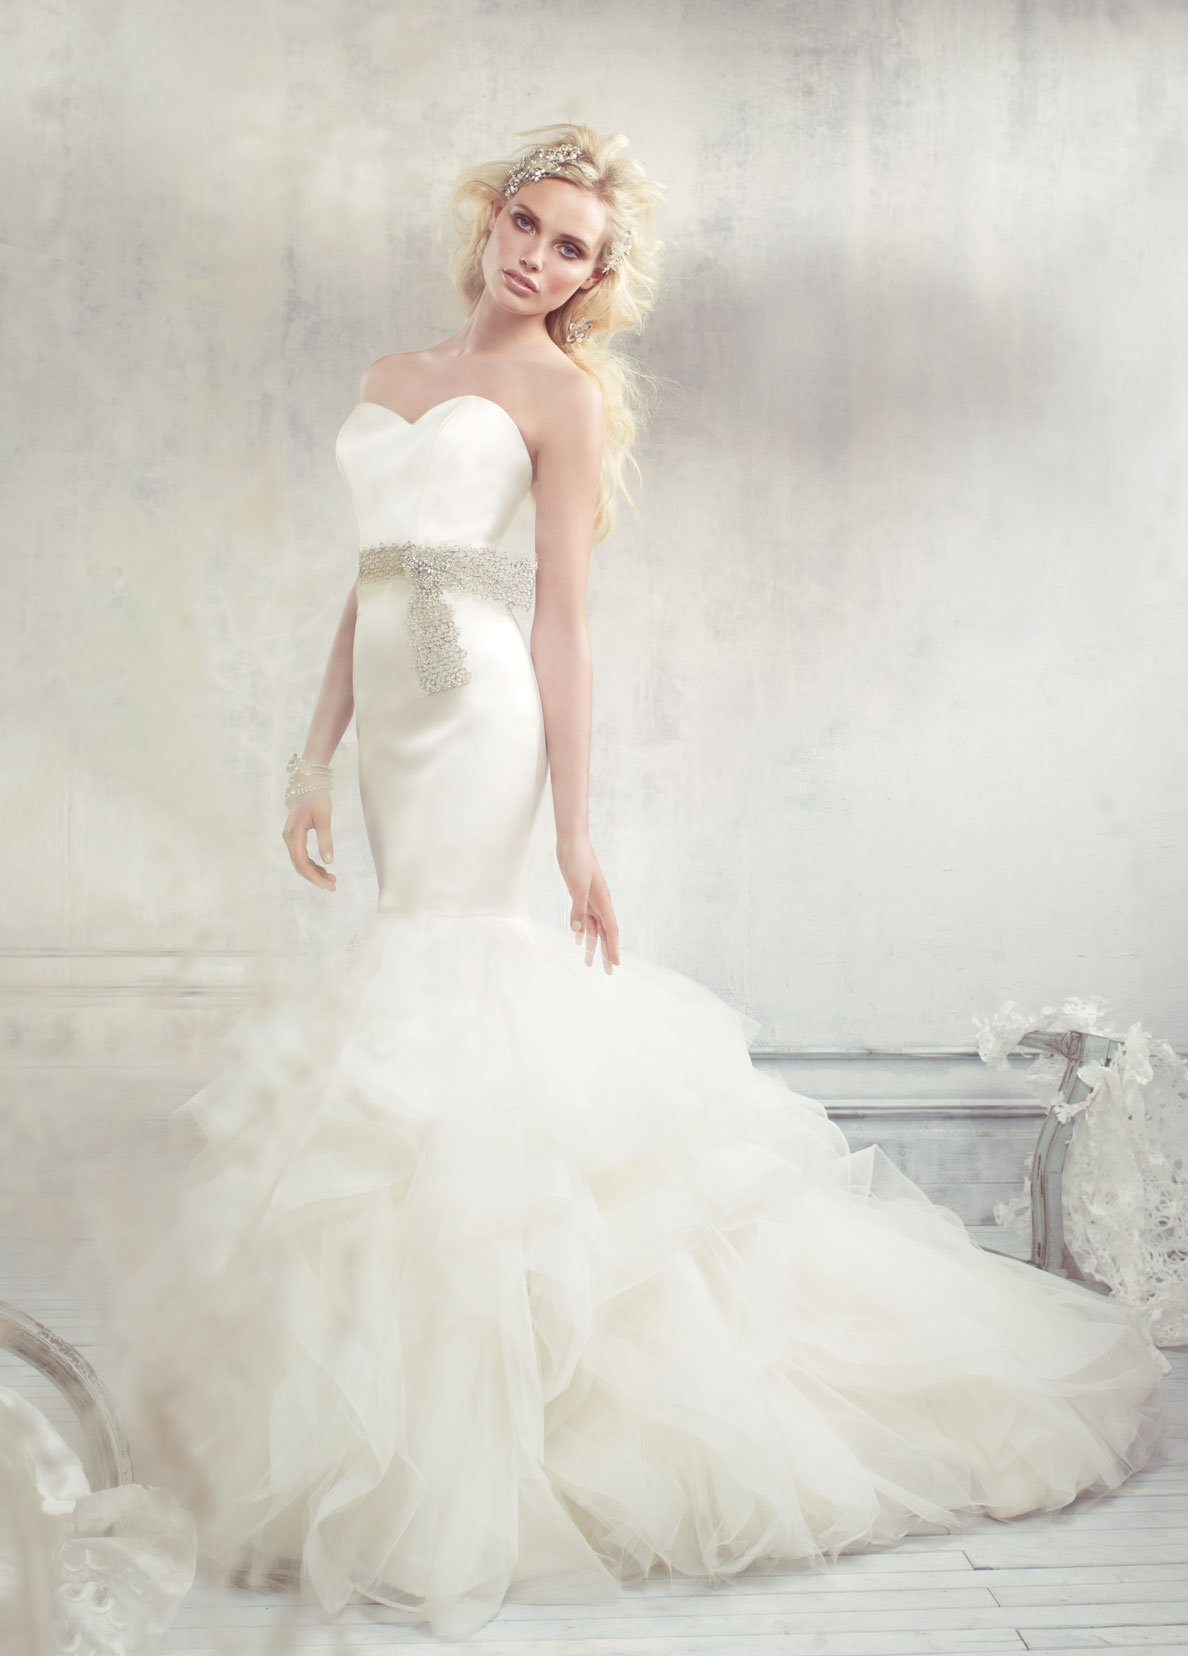 Bridal Gowns And Wedding Dresses By Jlm Couture Style 9307